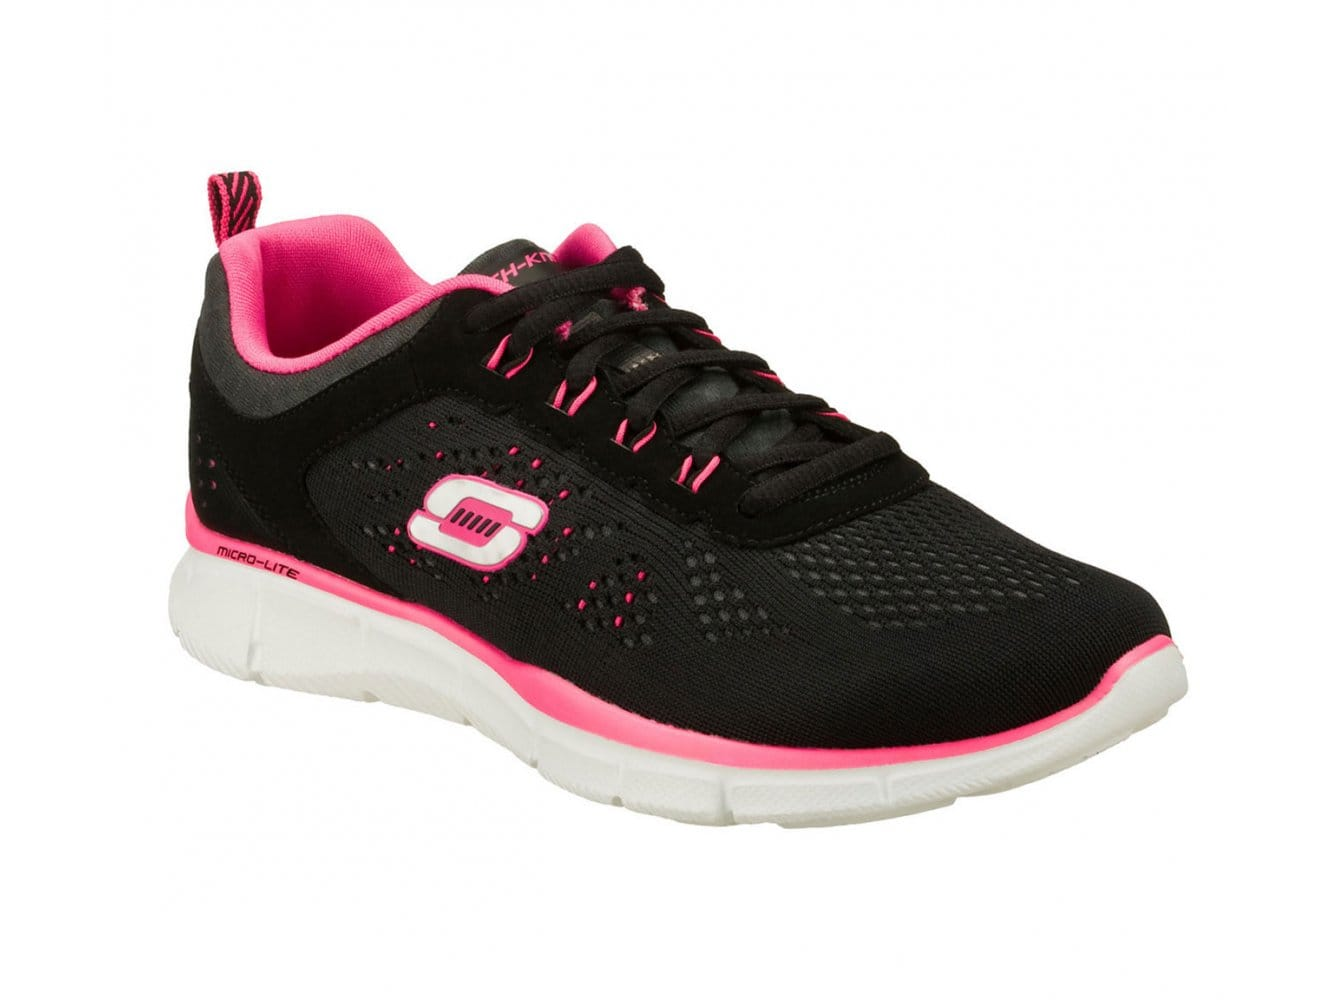 Skechers EQUALIZER NEW MILESTONE Ladies Lace Up Trainers BlackHot Pink